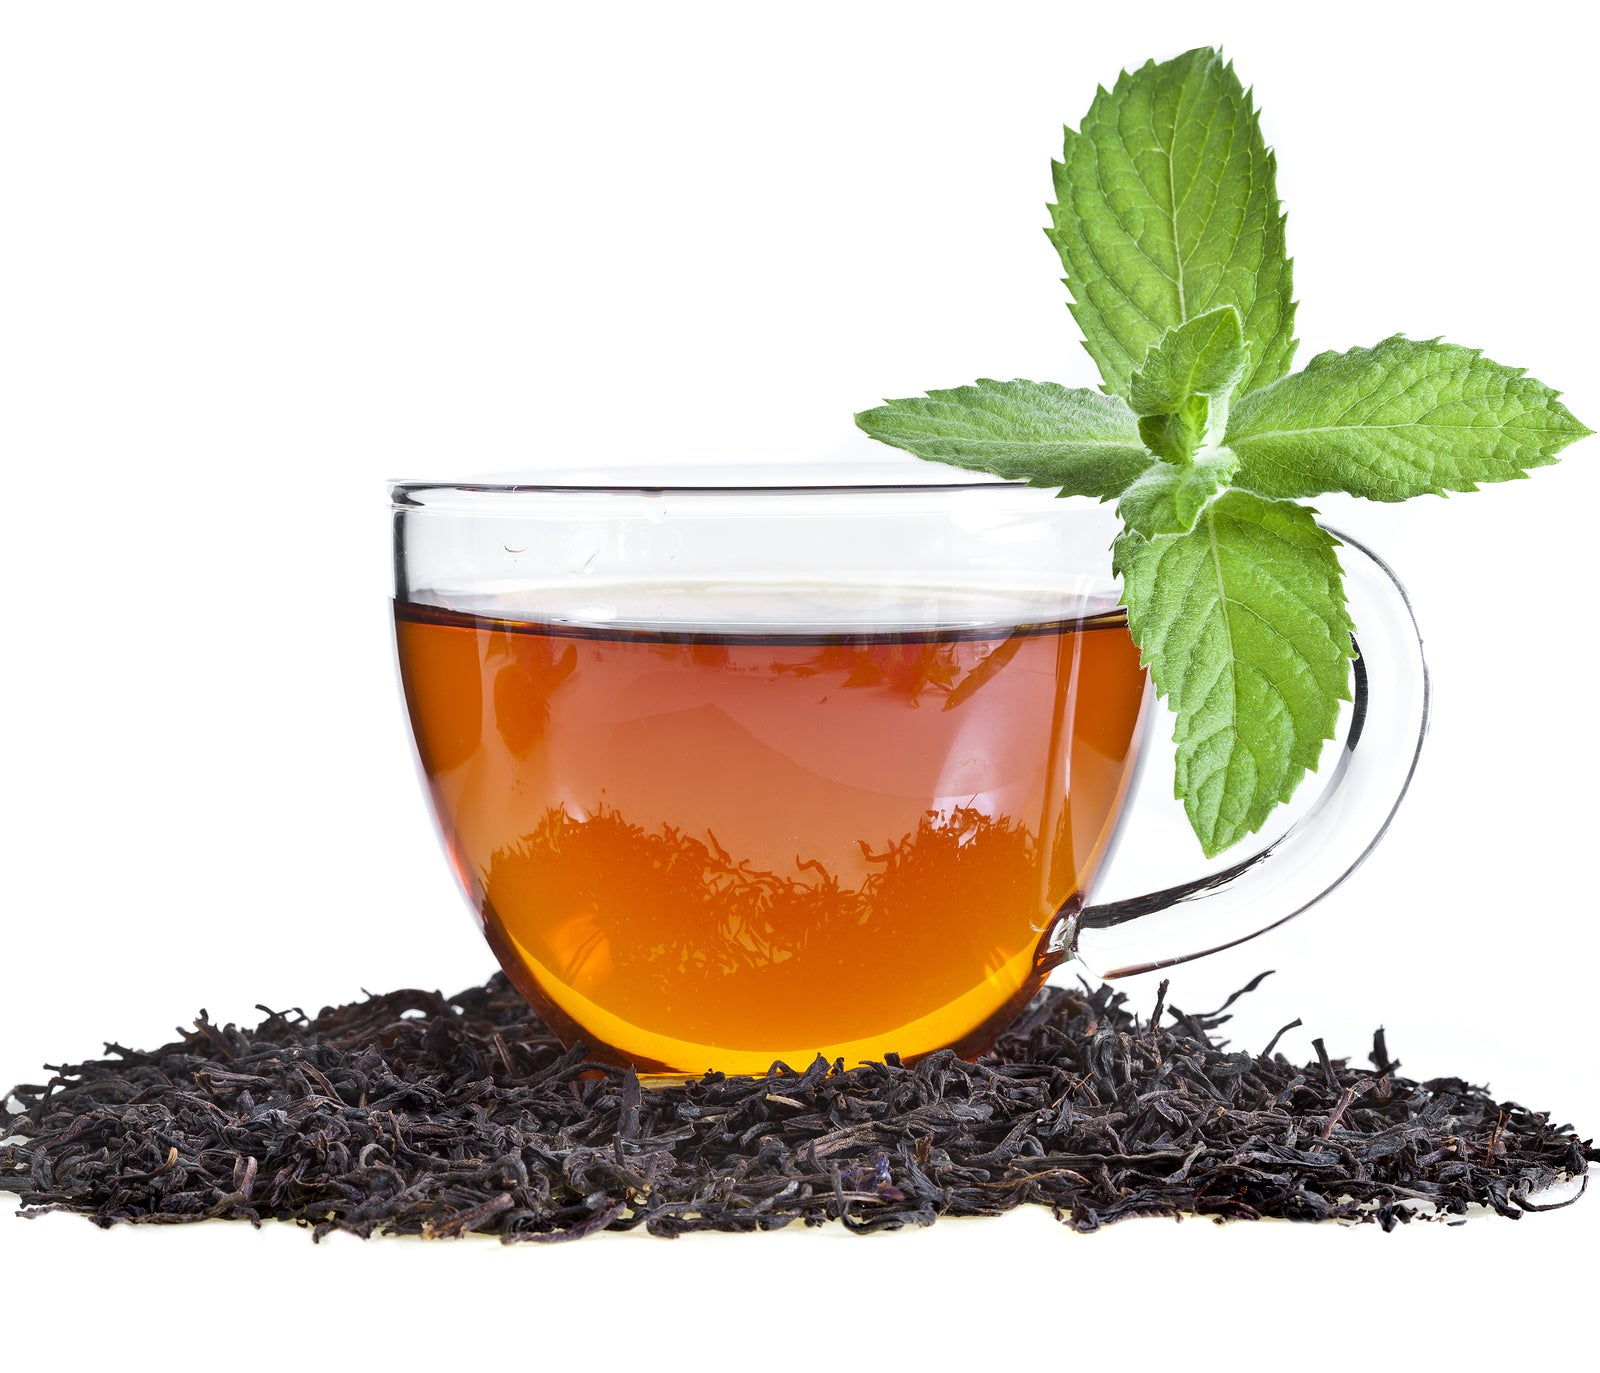 bigstock-Tea-cup-with-mint-leaves-on-a-36370273-1-1.jpg